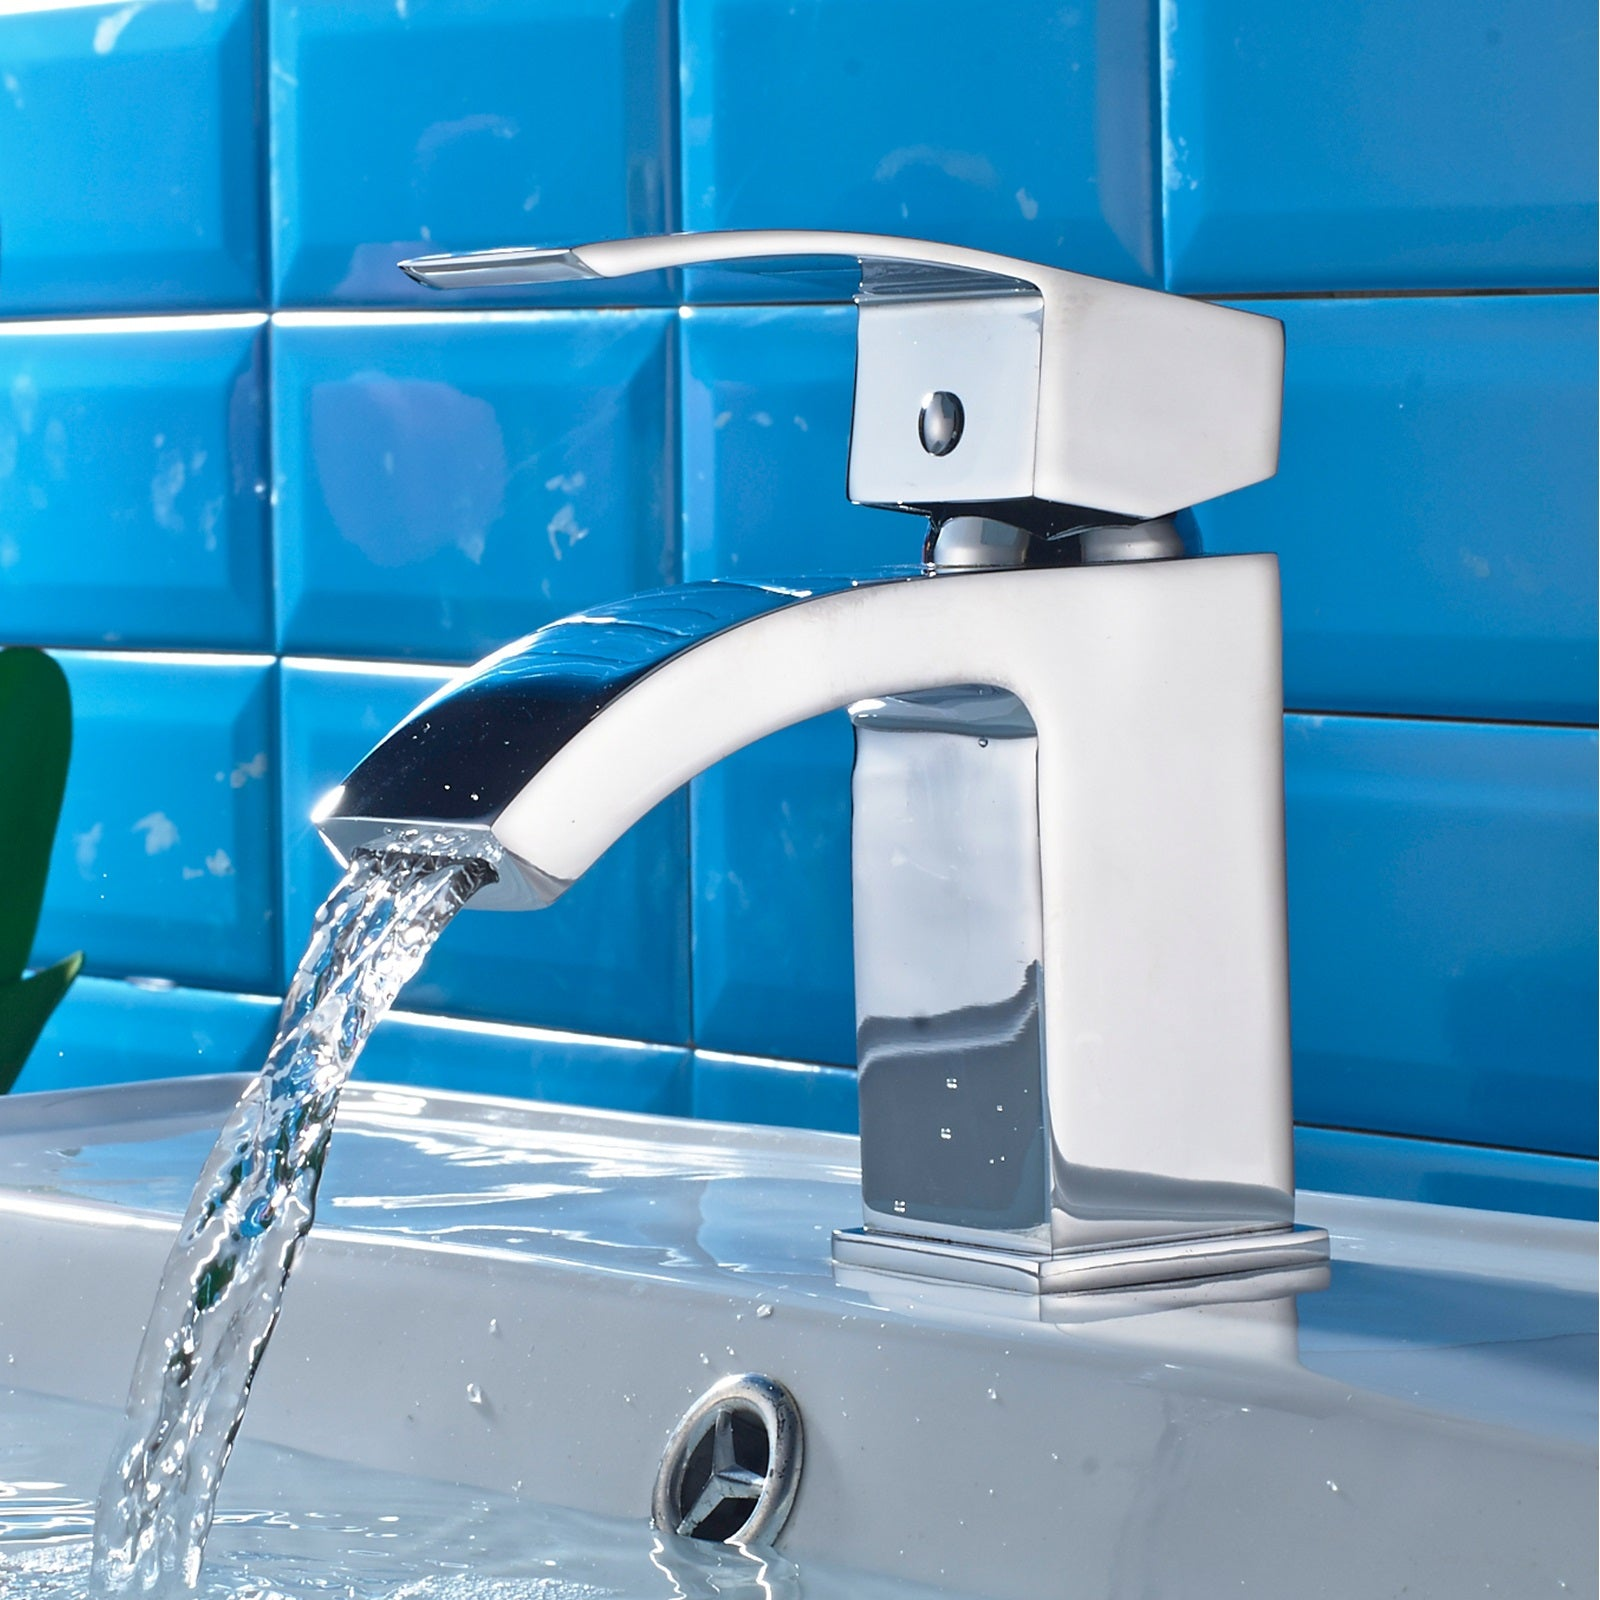 Introducing the Curve Mini Mono Basin Mixer Tap!